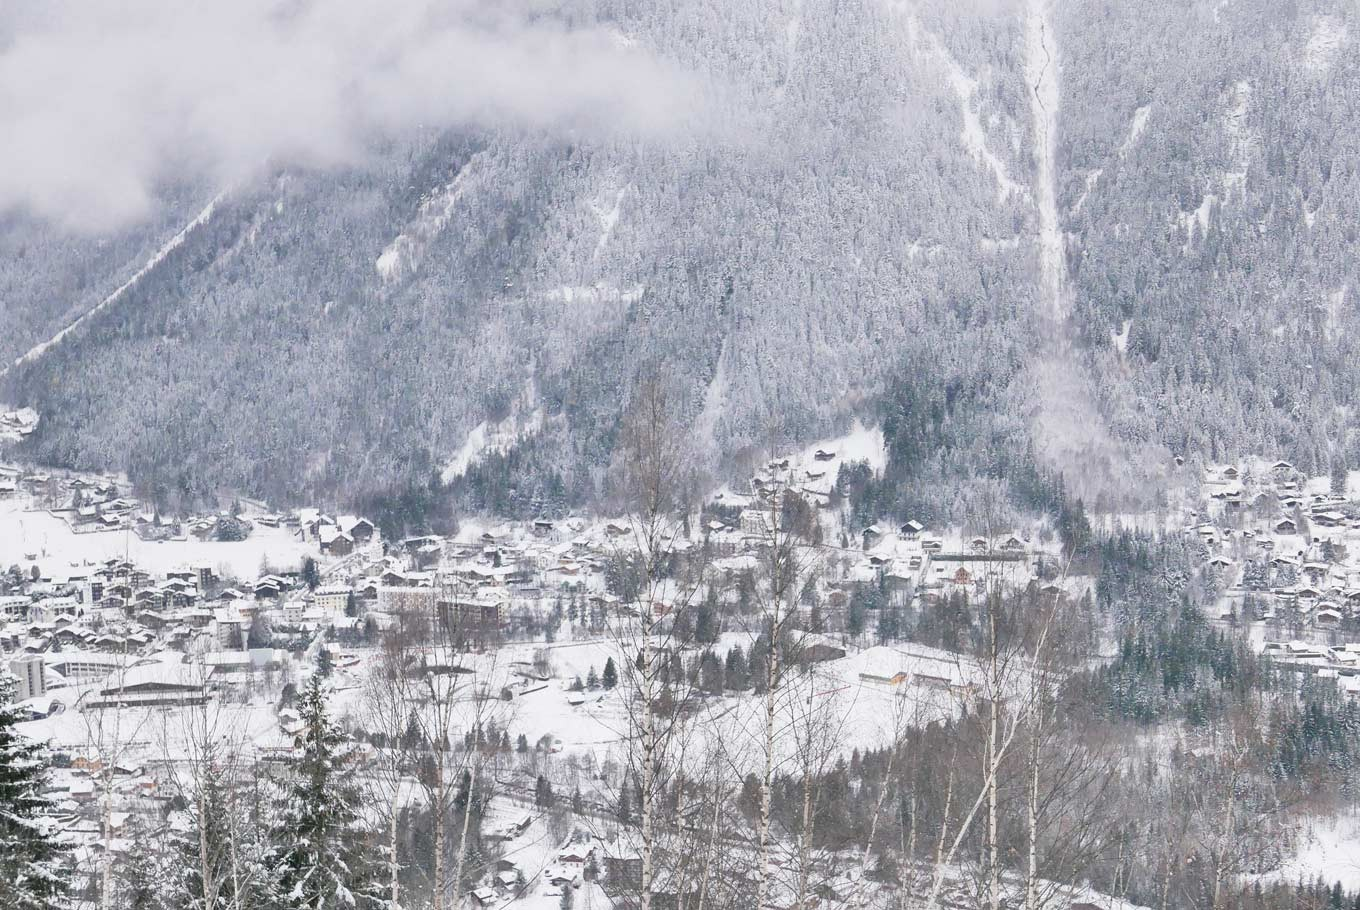 The snow-blanketed valley city of Chamonix Mont-Blanc, seen from the Red Train ride to Montenvers.